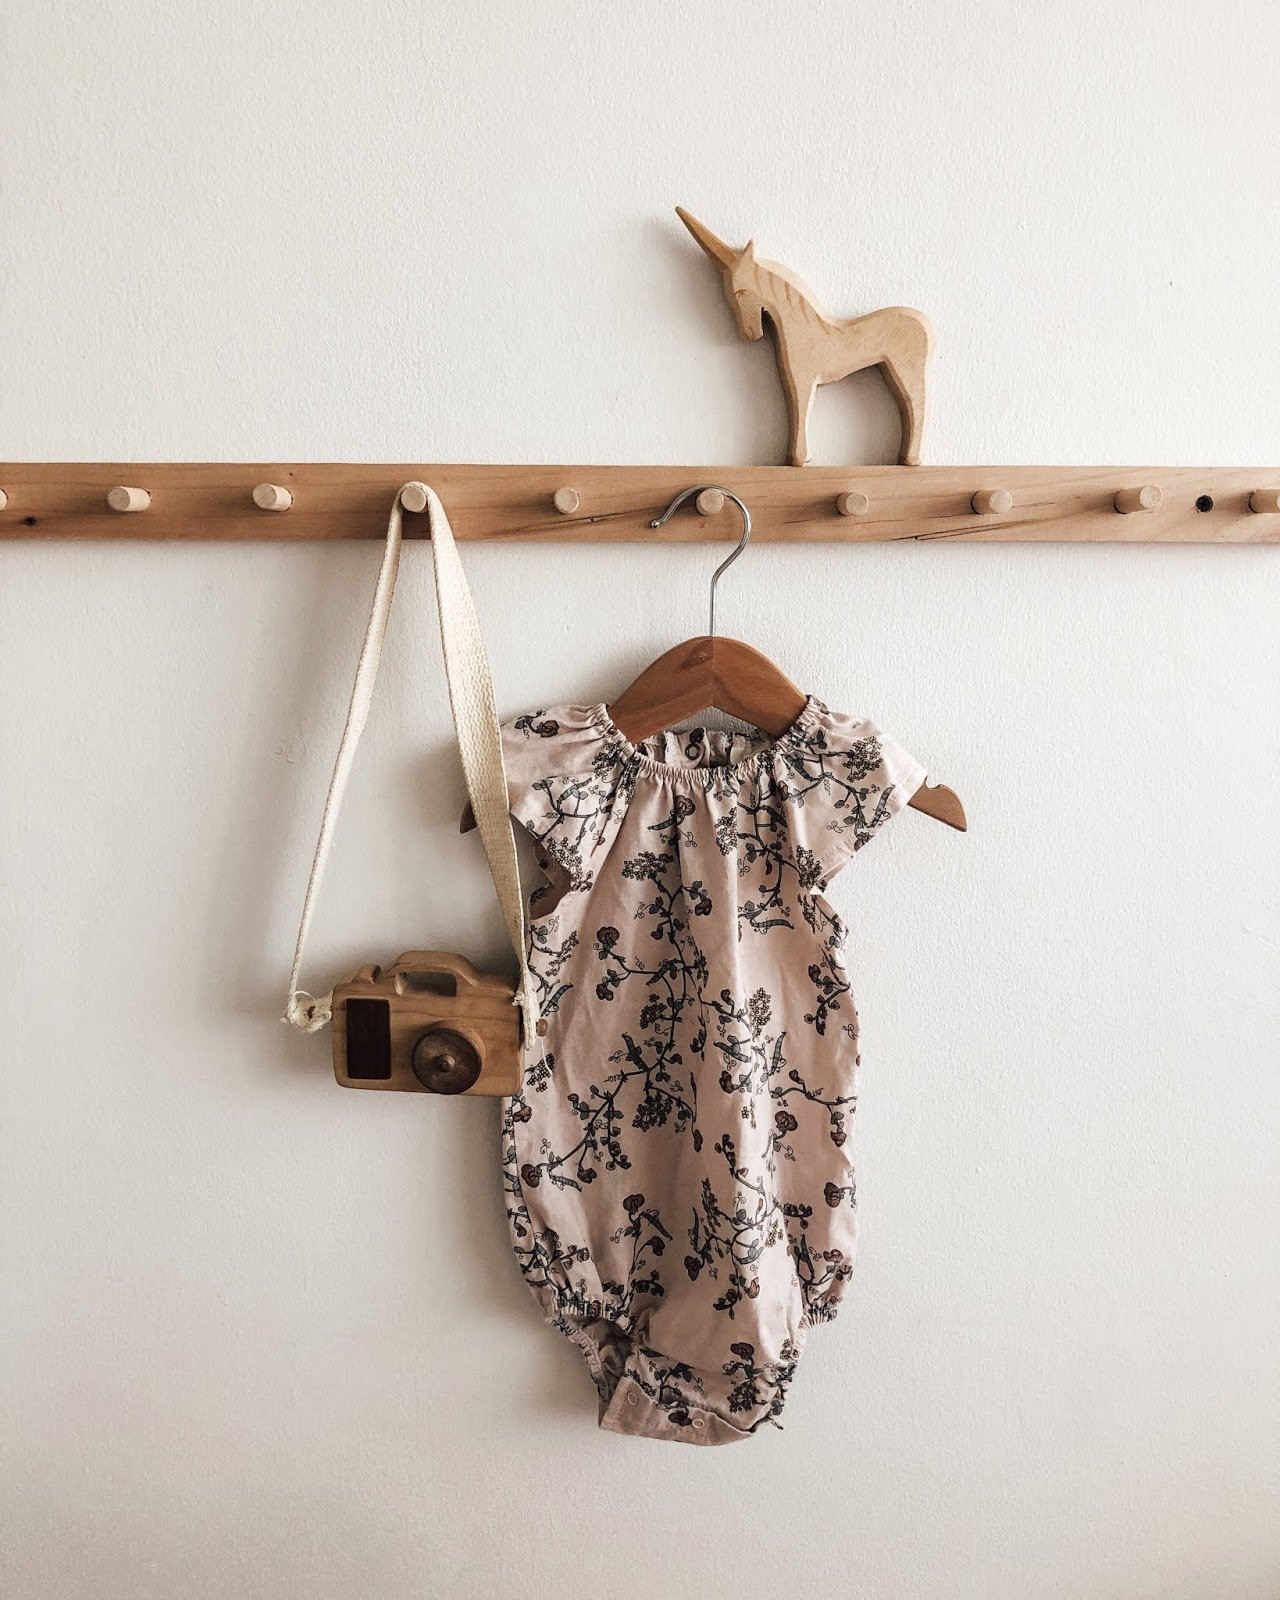 A child's jumper hanging on the wall.